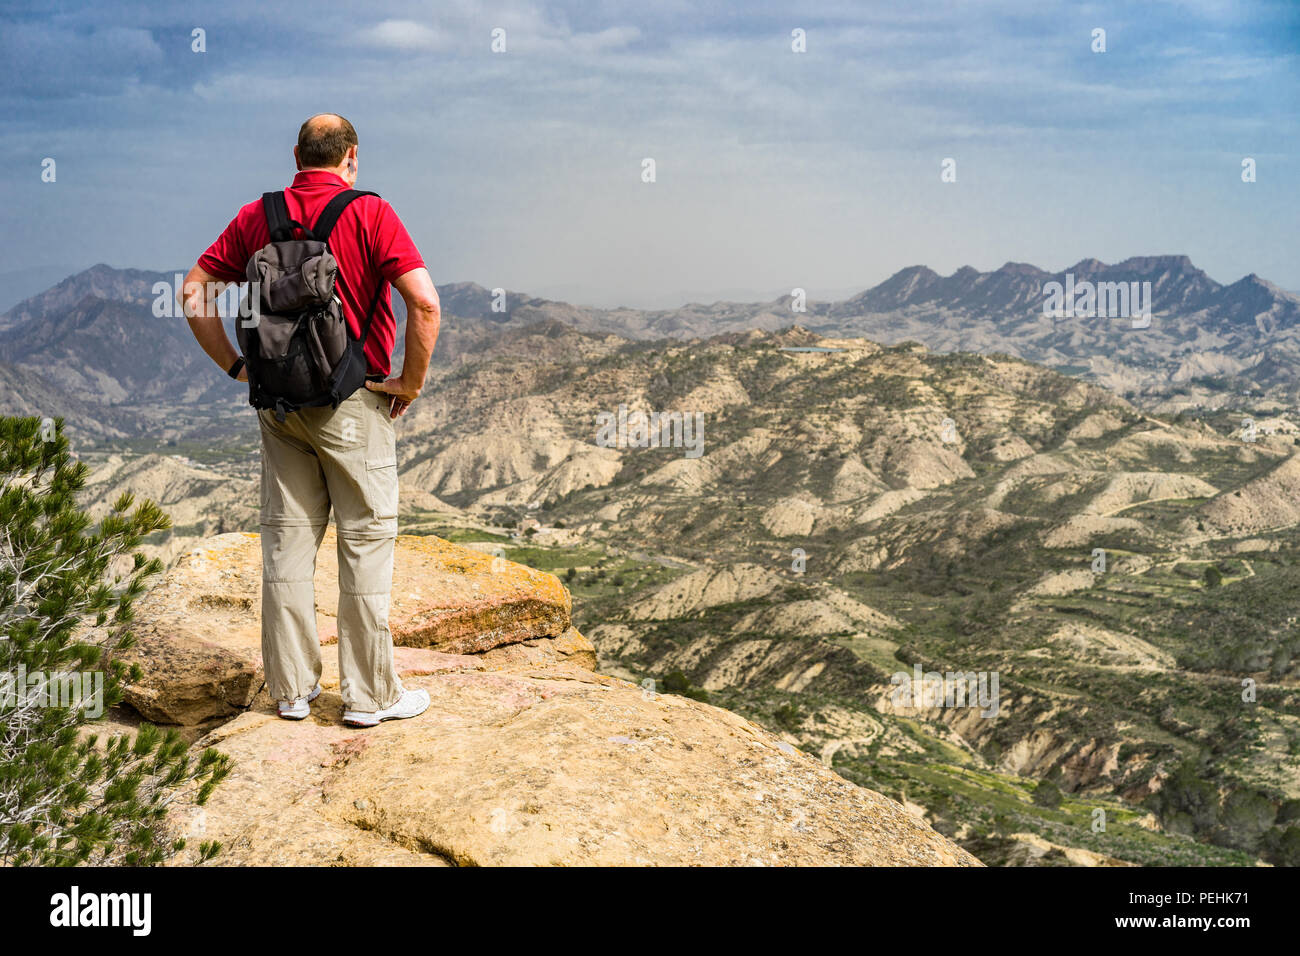 Hiker with red shirt and rucksack stands on a rocky outcrop and views the countryside of Murcia, Spain, looking towards the mountains in the distance. - Stock Image